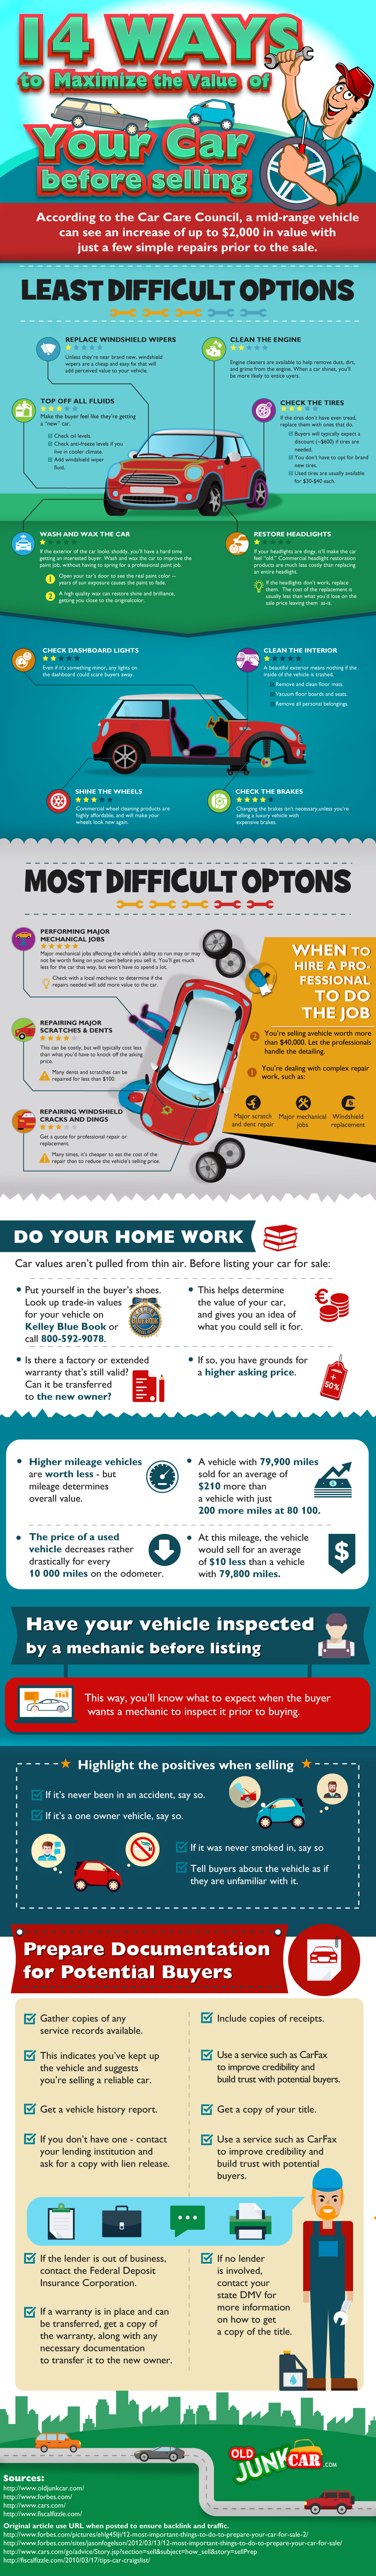 Maximize Your Car\'s Resale Value With This Checklist | Infographic ...